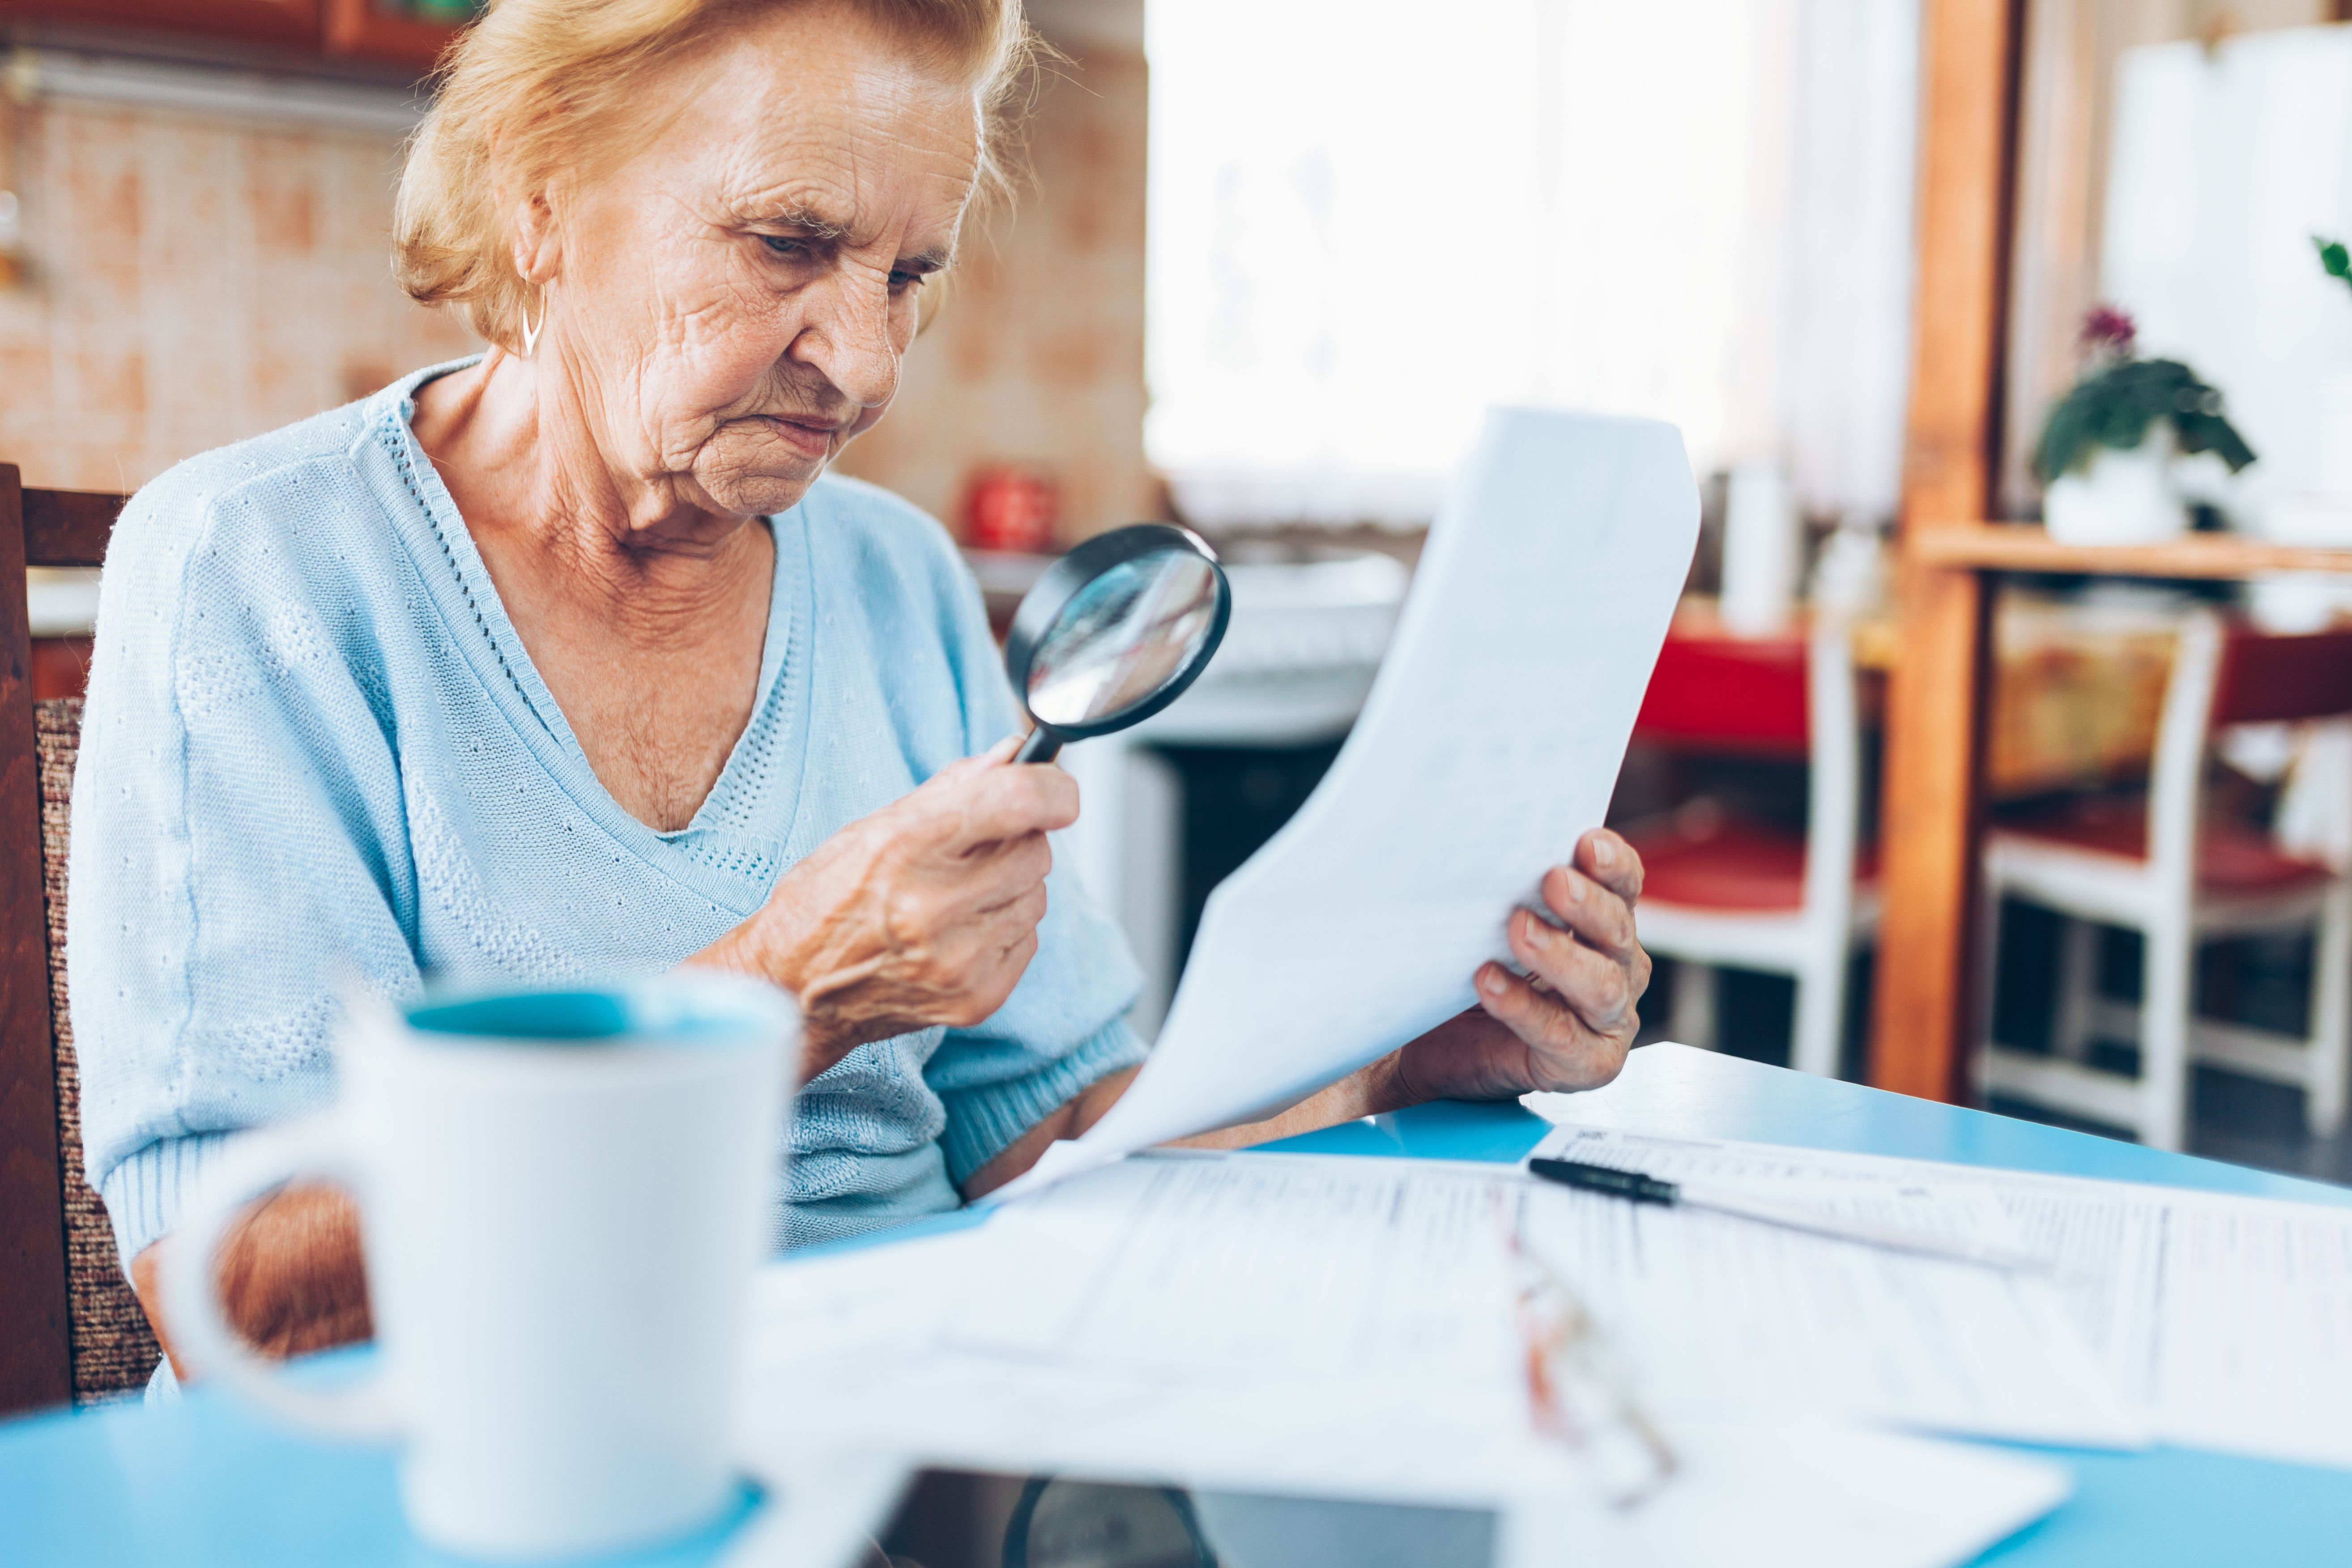 An elderly woman looking at her utility bills